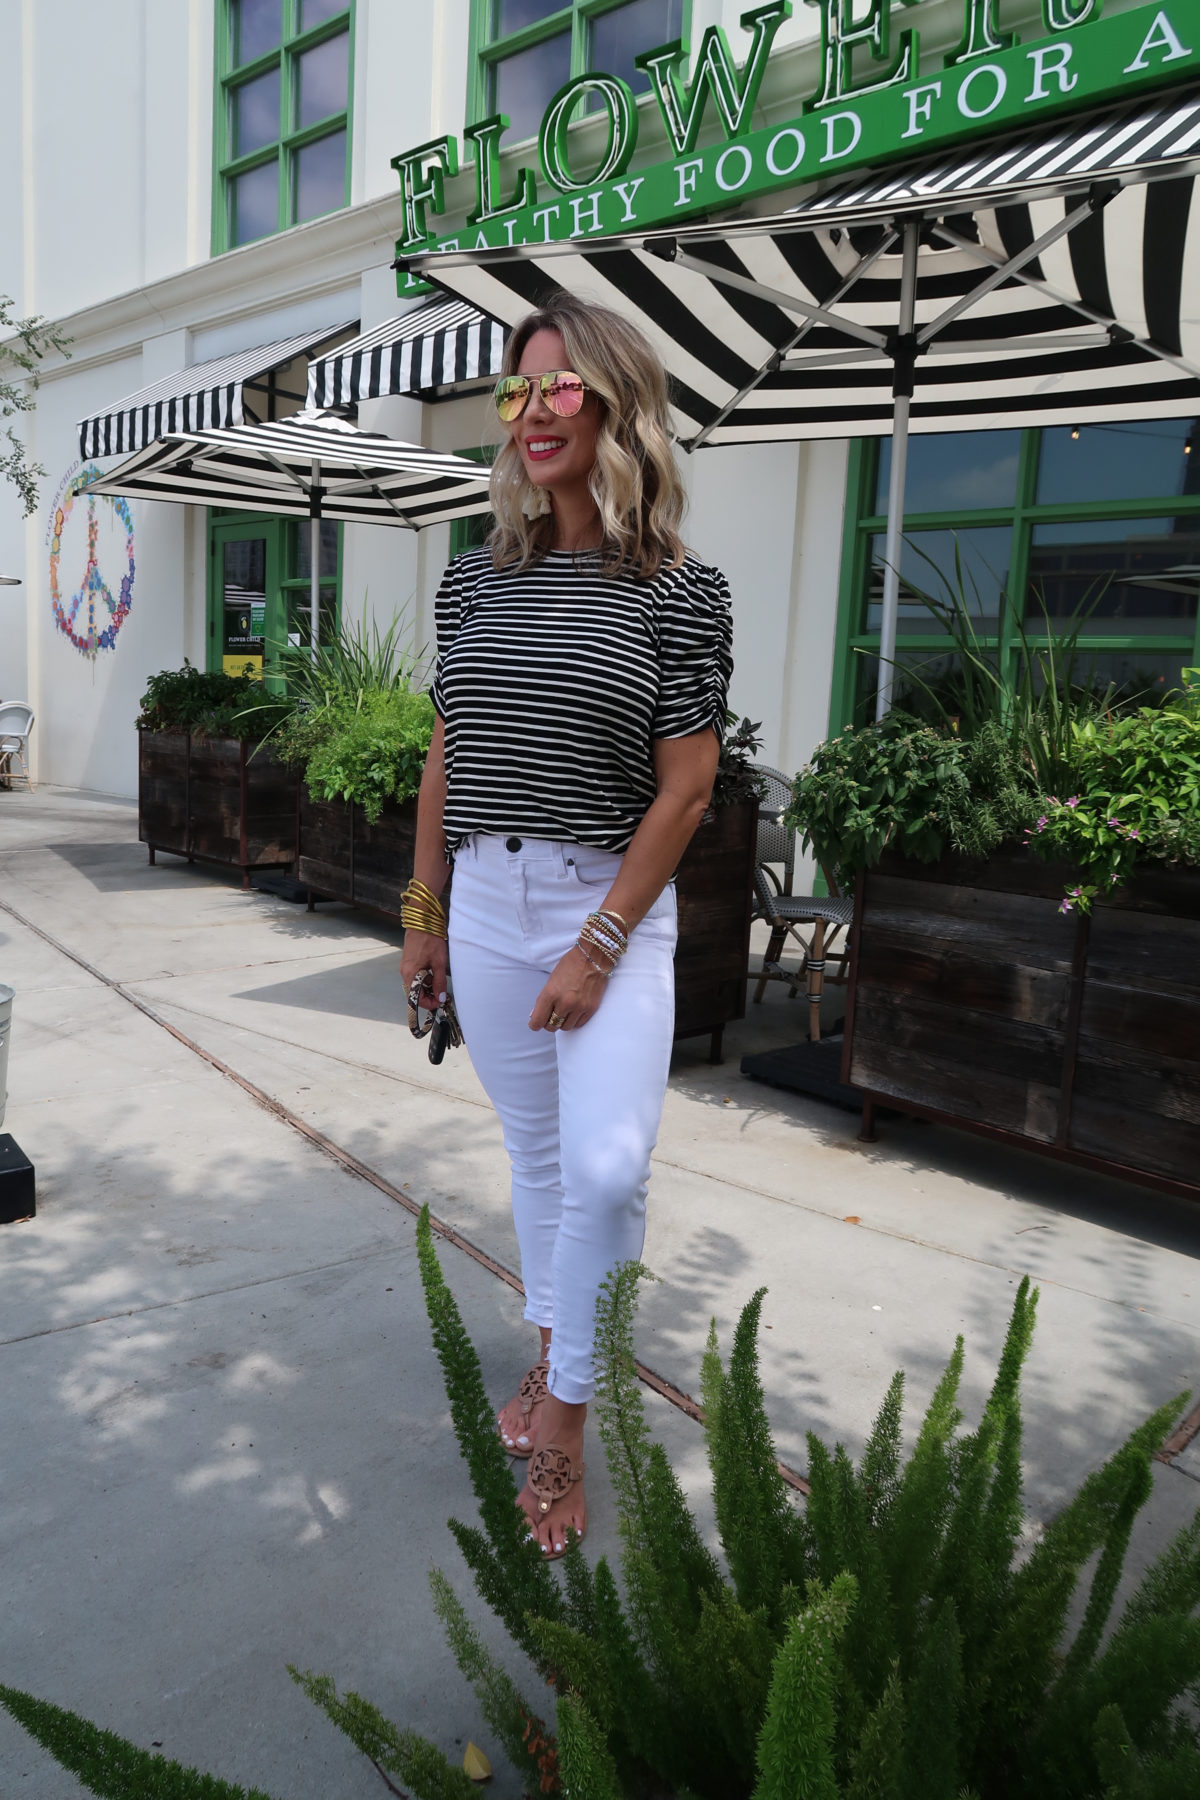 New Summer Styles, Gibson and Nordstrom, Stripe Top, White Jeans, Miller Sandals, Ring Bag